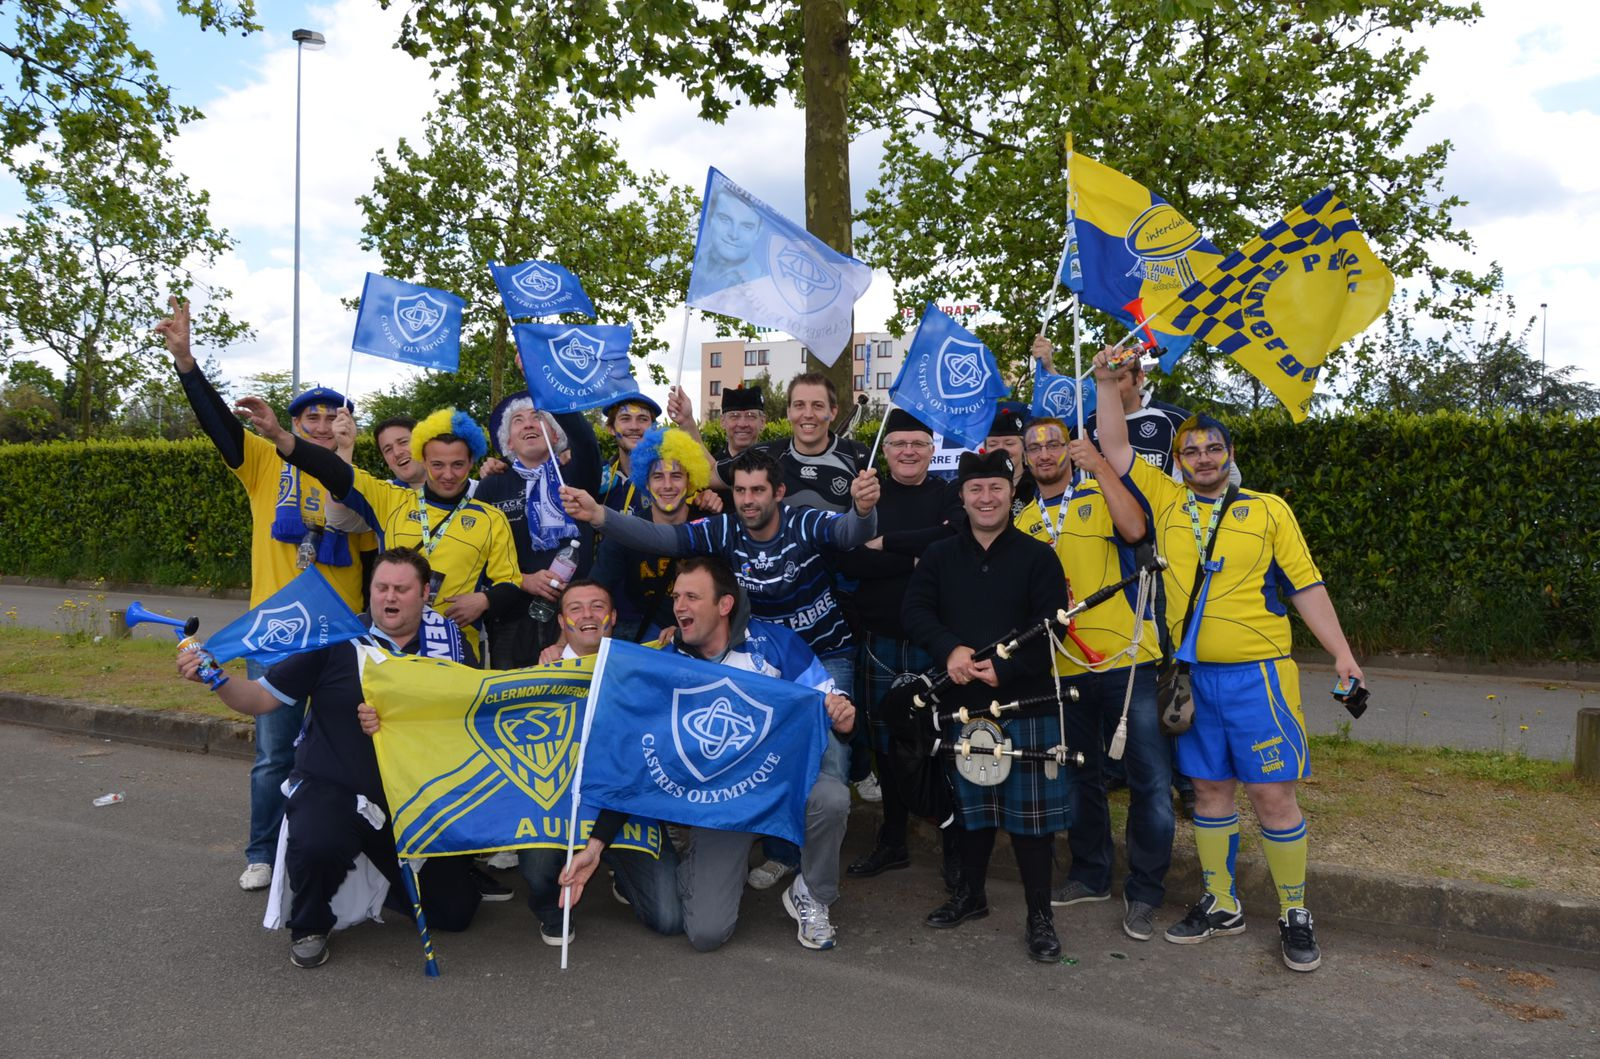 Rugby Top 14 - La Beaujoire - Nantes